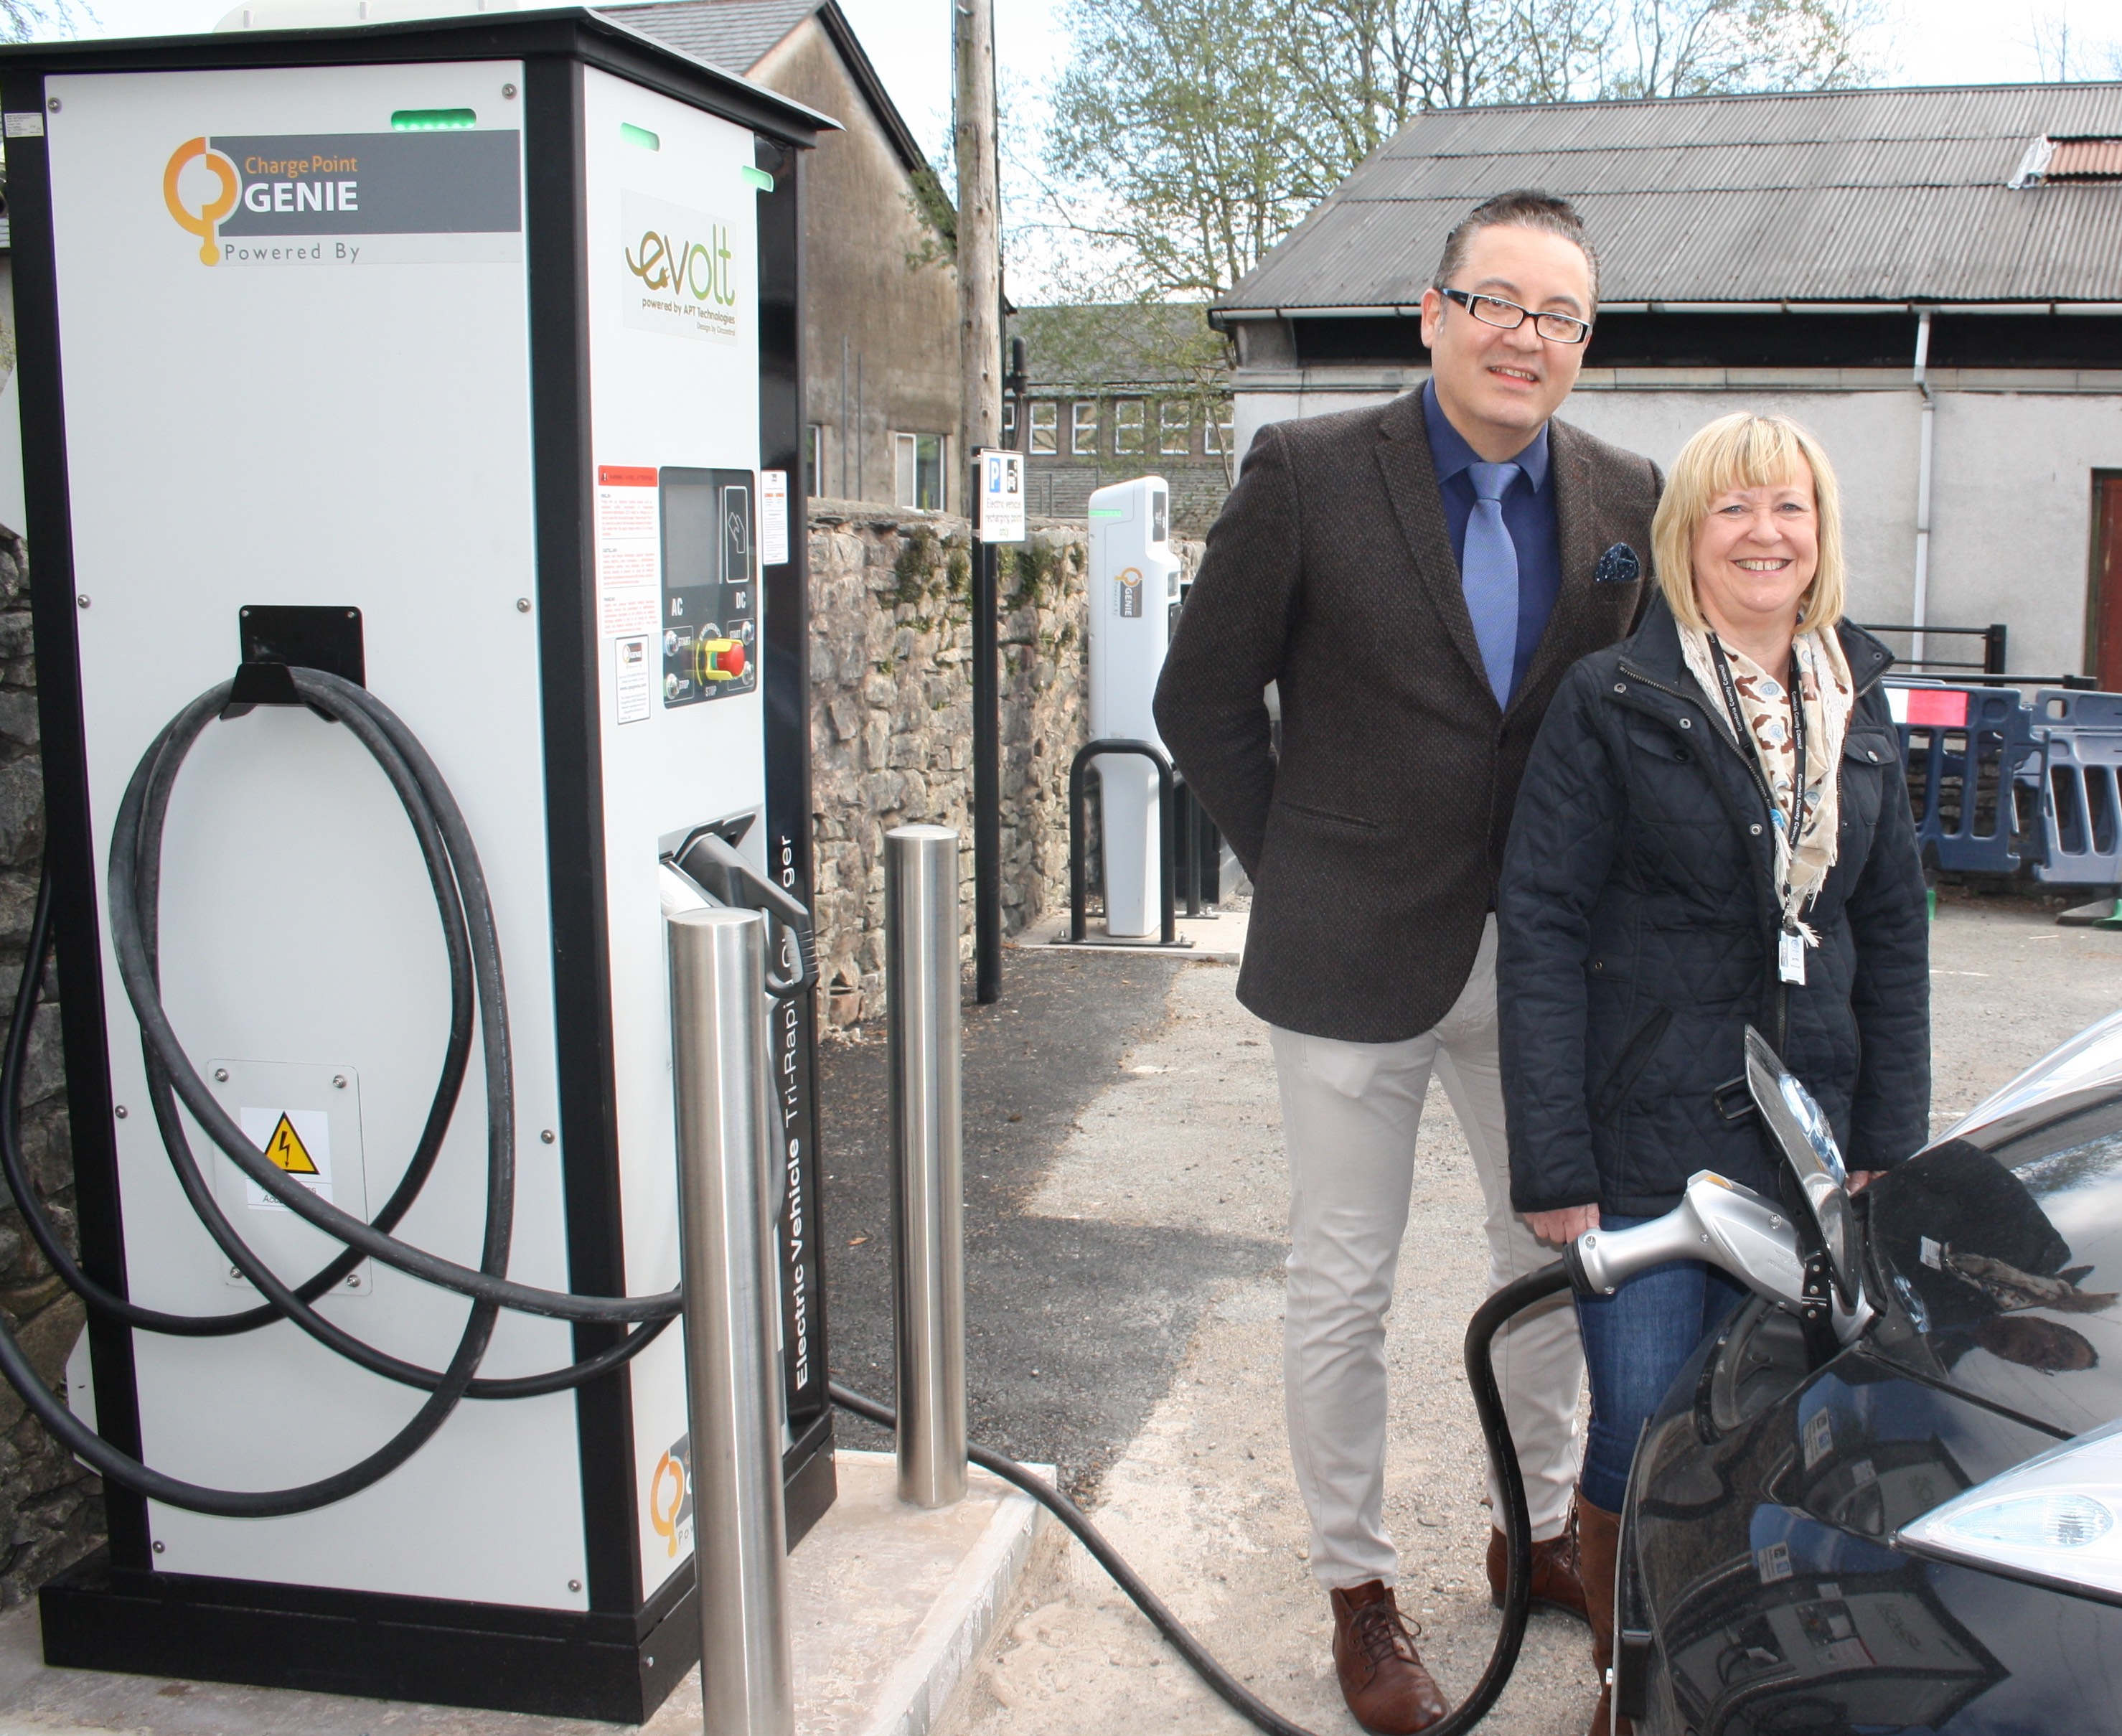 eVolt charging points in Cumbria